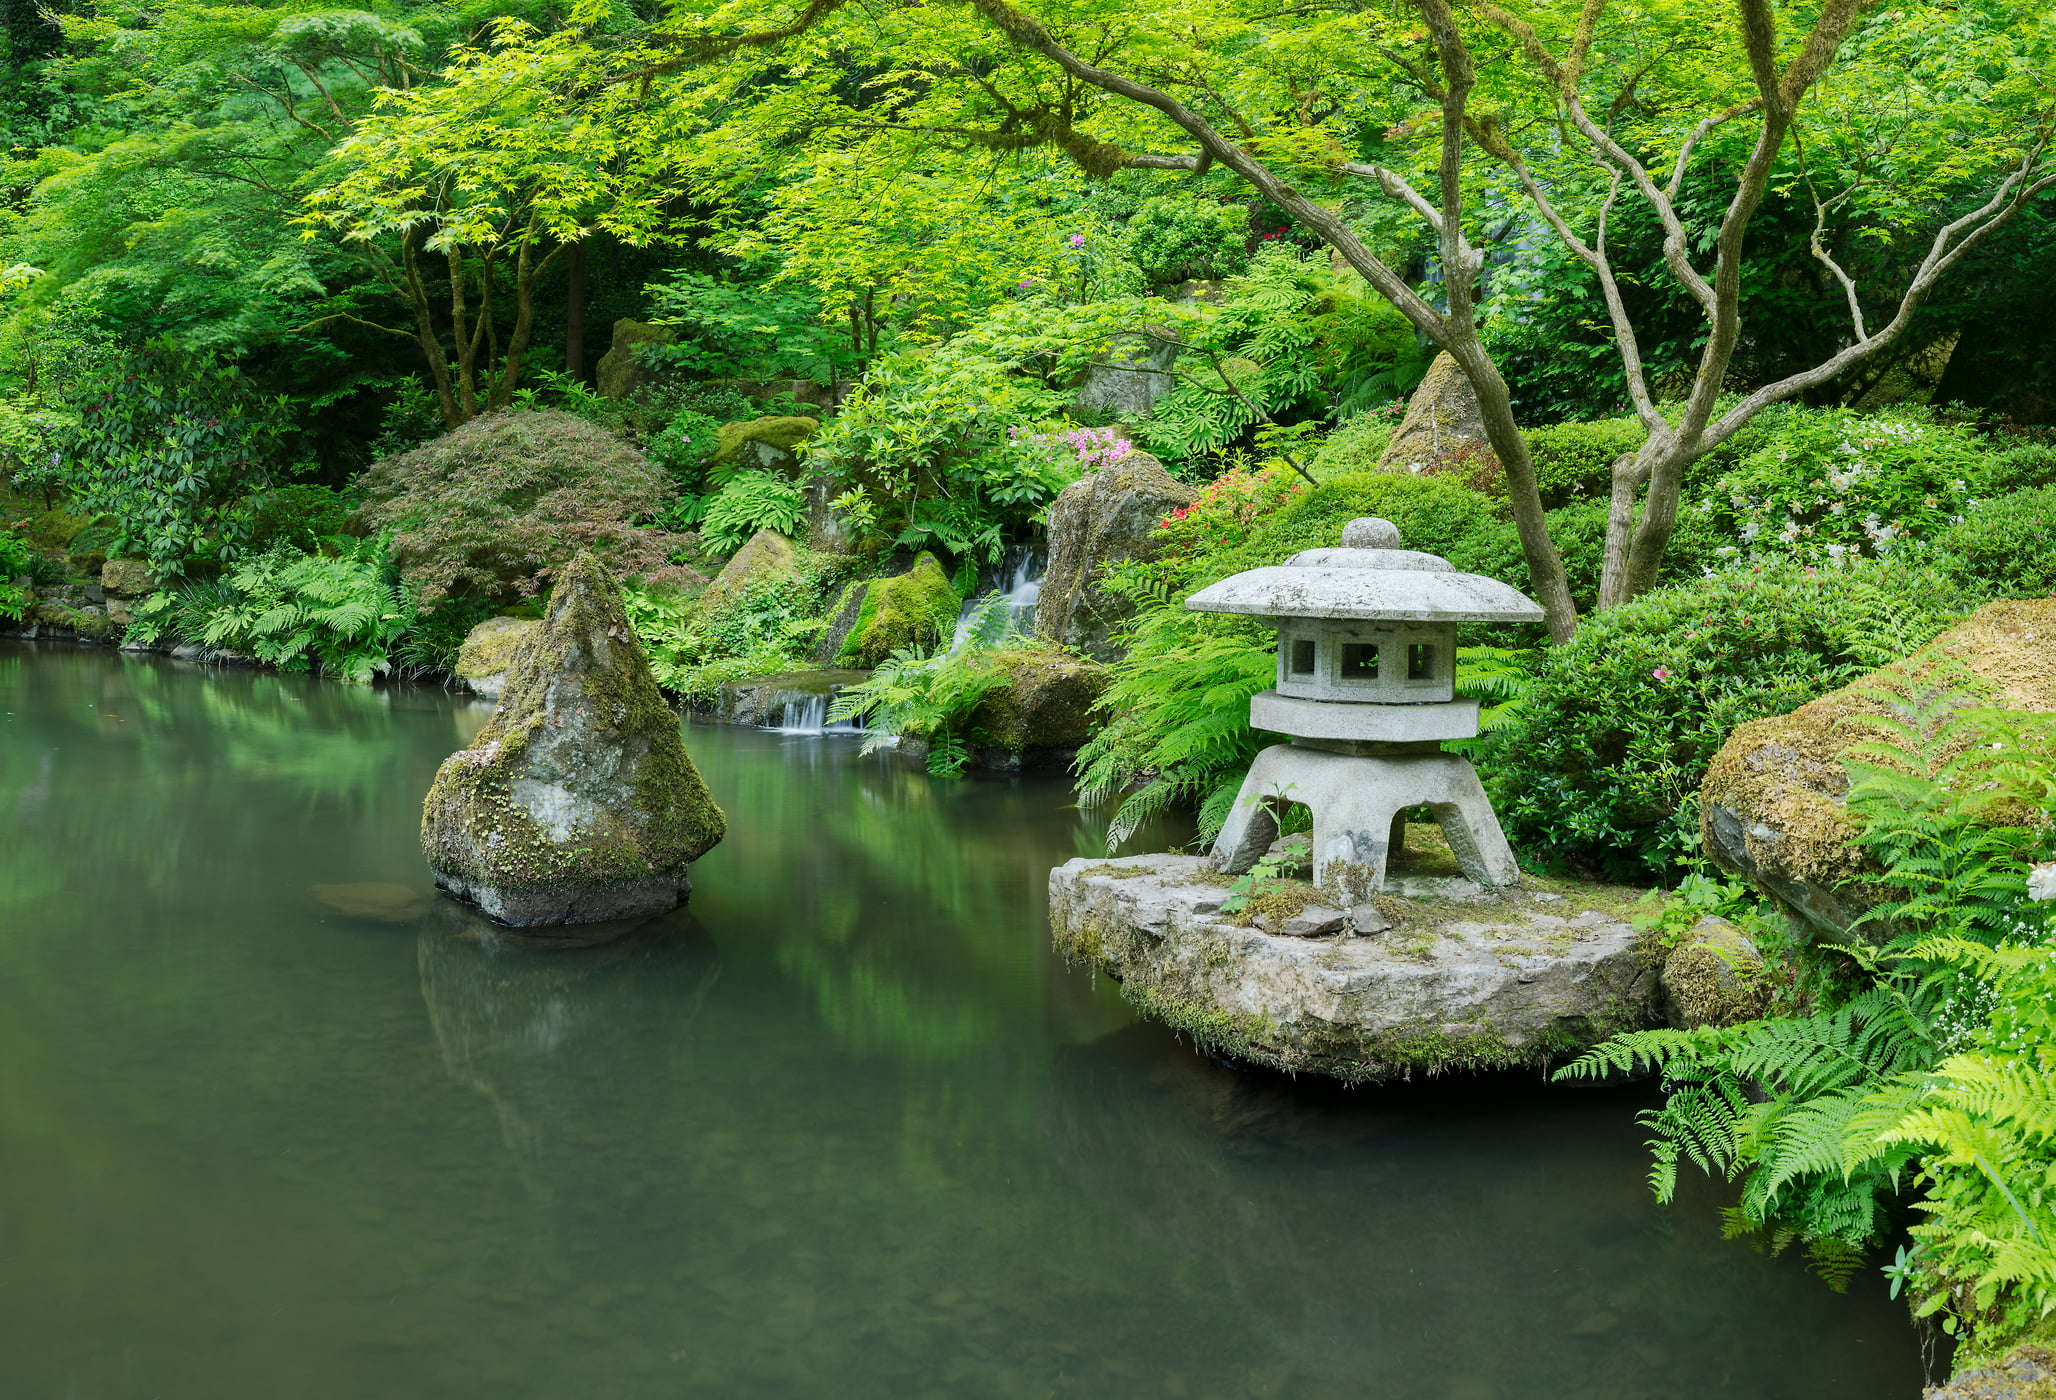 250 megapixels! A very high resolution, large-format VAST photo print of a Japanese garden with a pond and t?r? stone lantern; photograph created by Greg Probst in Japanese Garden in Portland, Oregon